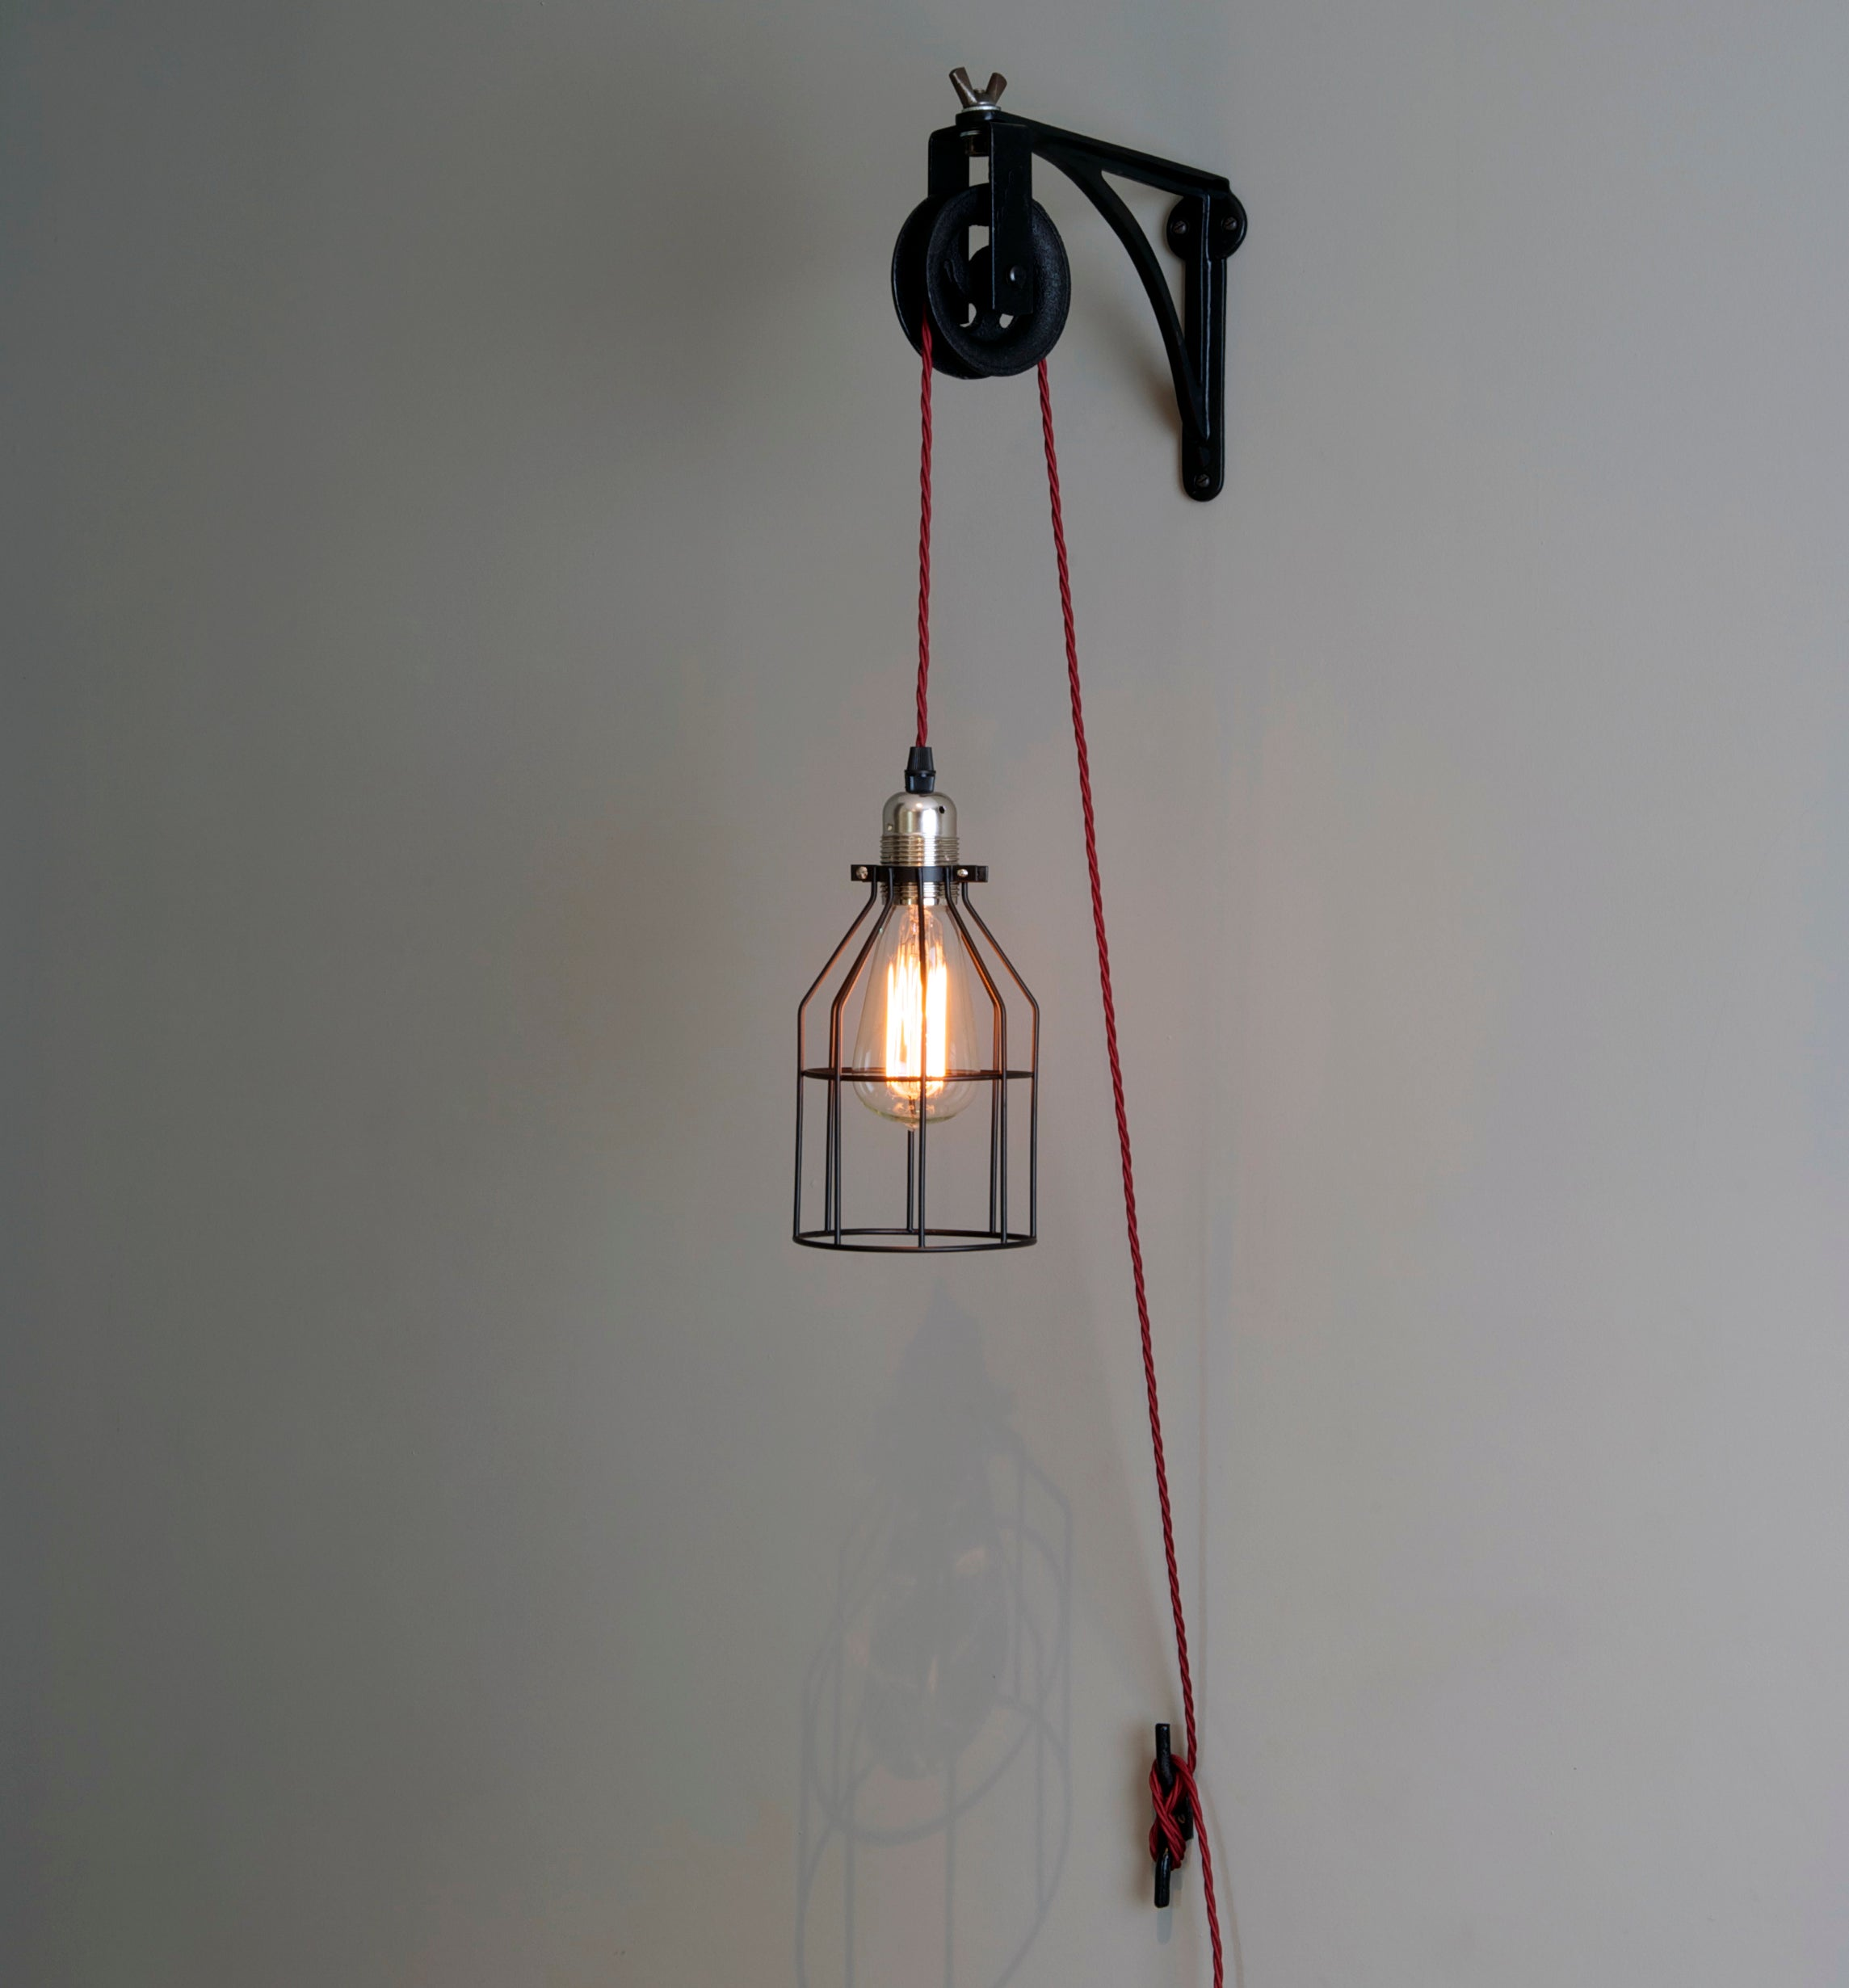 Wall Mounted Industrial Lights Vintage Wall Mounted Industrial Pulley Light Hütte